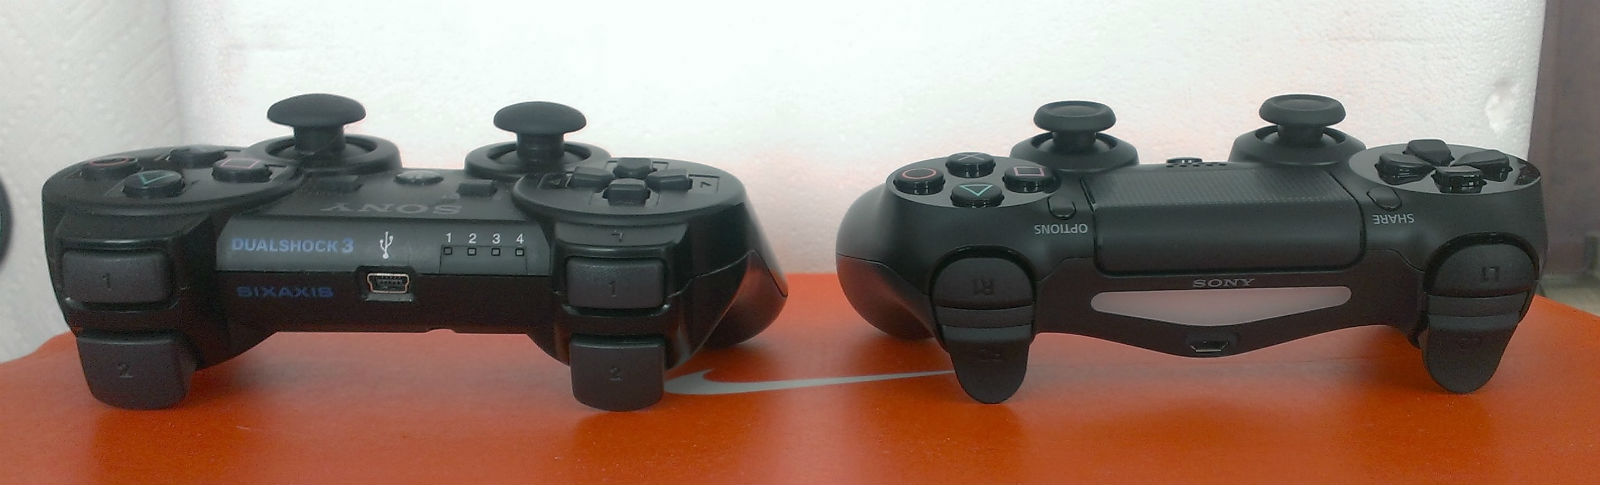 Just How Good is the DualShock 4? Hands On With the New PS4 ...